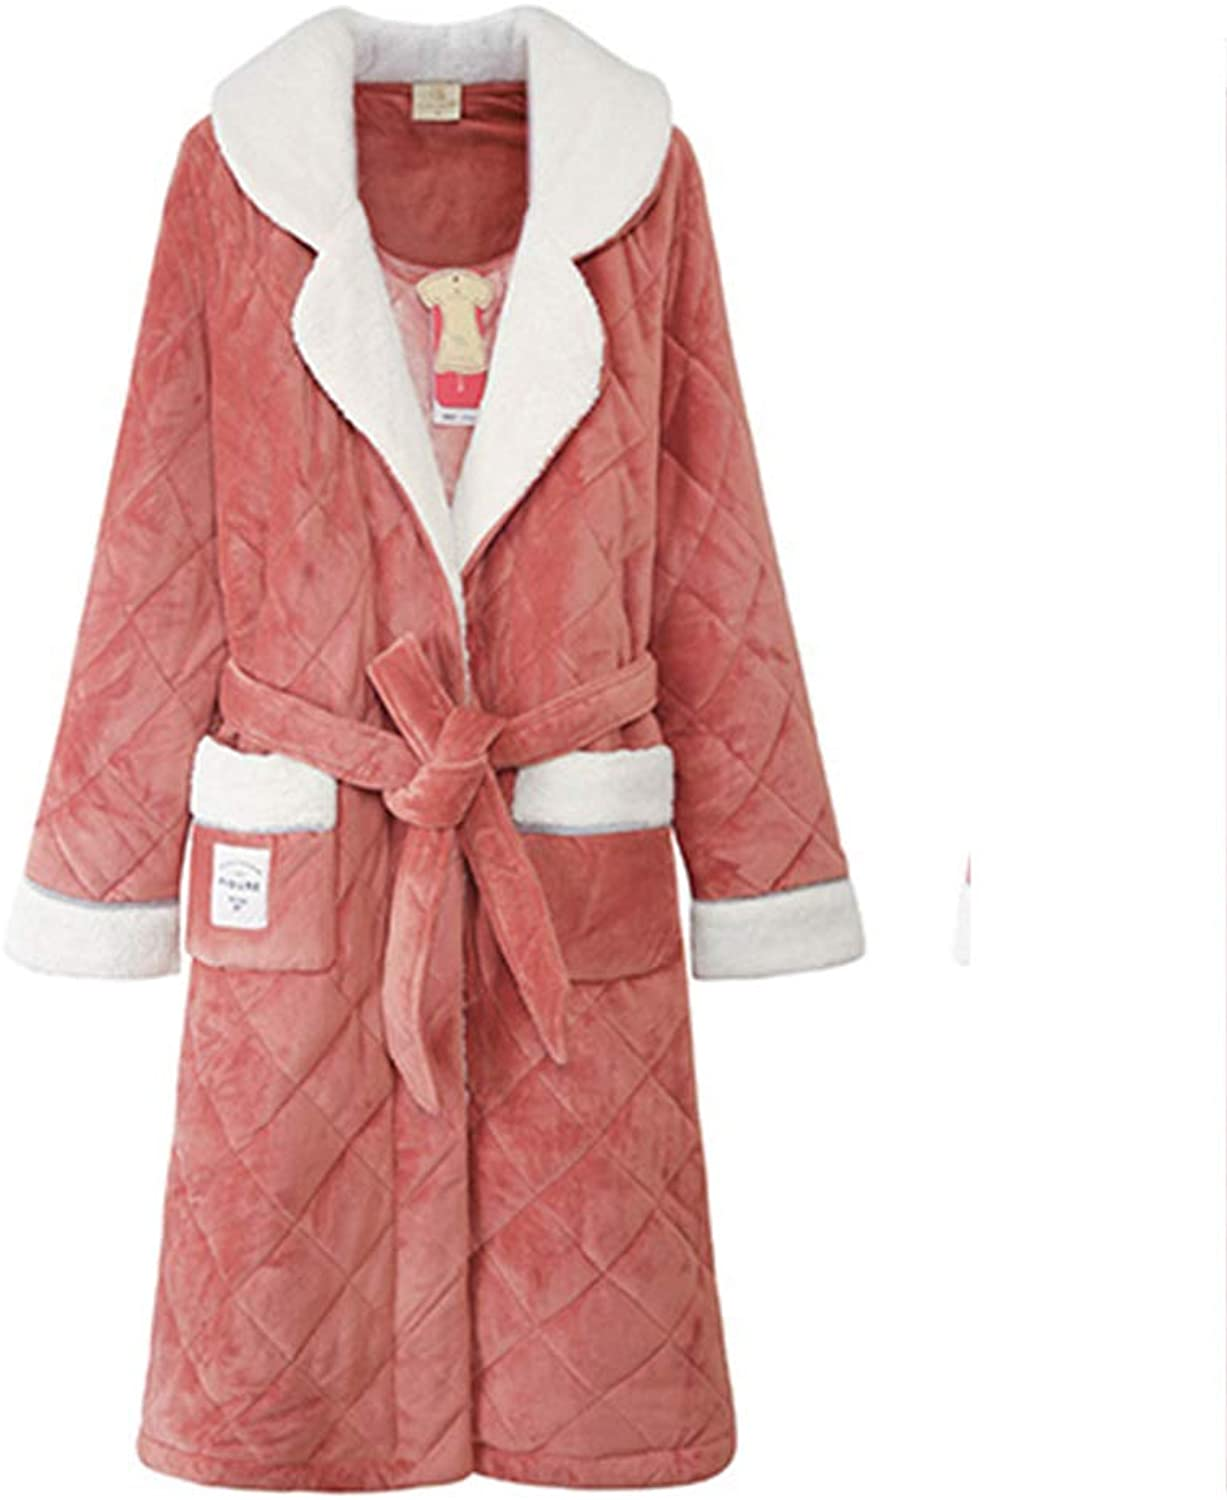 Robe Women's Padded Pajamas Winter Nightdress Home Clothes Tie Bathrobe Warm Pink Bathrobe Pocket Lapel Robes (Size   S)